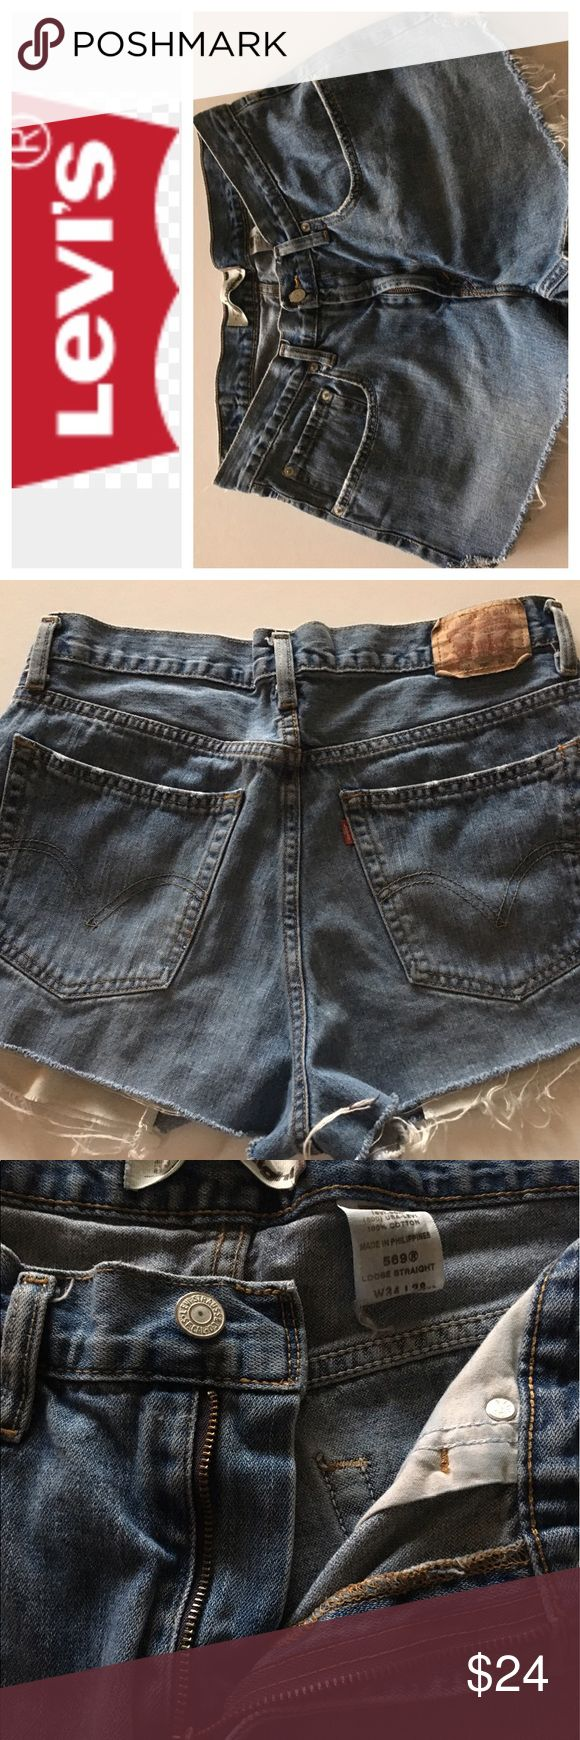 """💸Levi's 569 denim cutoffs in size 36 💸Levi's 569 denim cutoffs in size 36 inseam 3"""" and leg opening 13"""" across. I cut these myself because original inseam was 28 and hems were worn out. Hope you like them! Levi's Shorts Jean Shorts"""